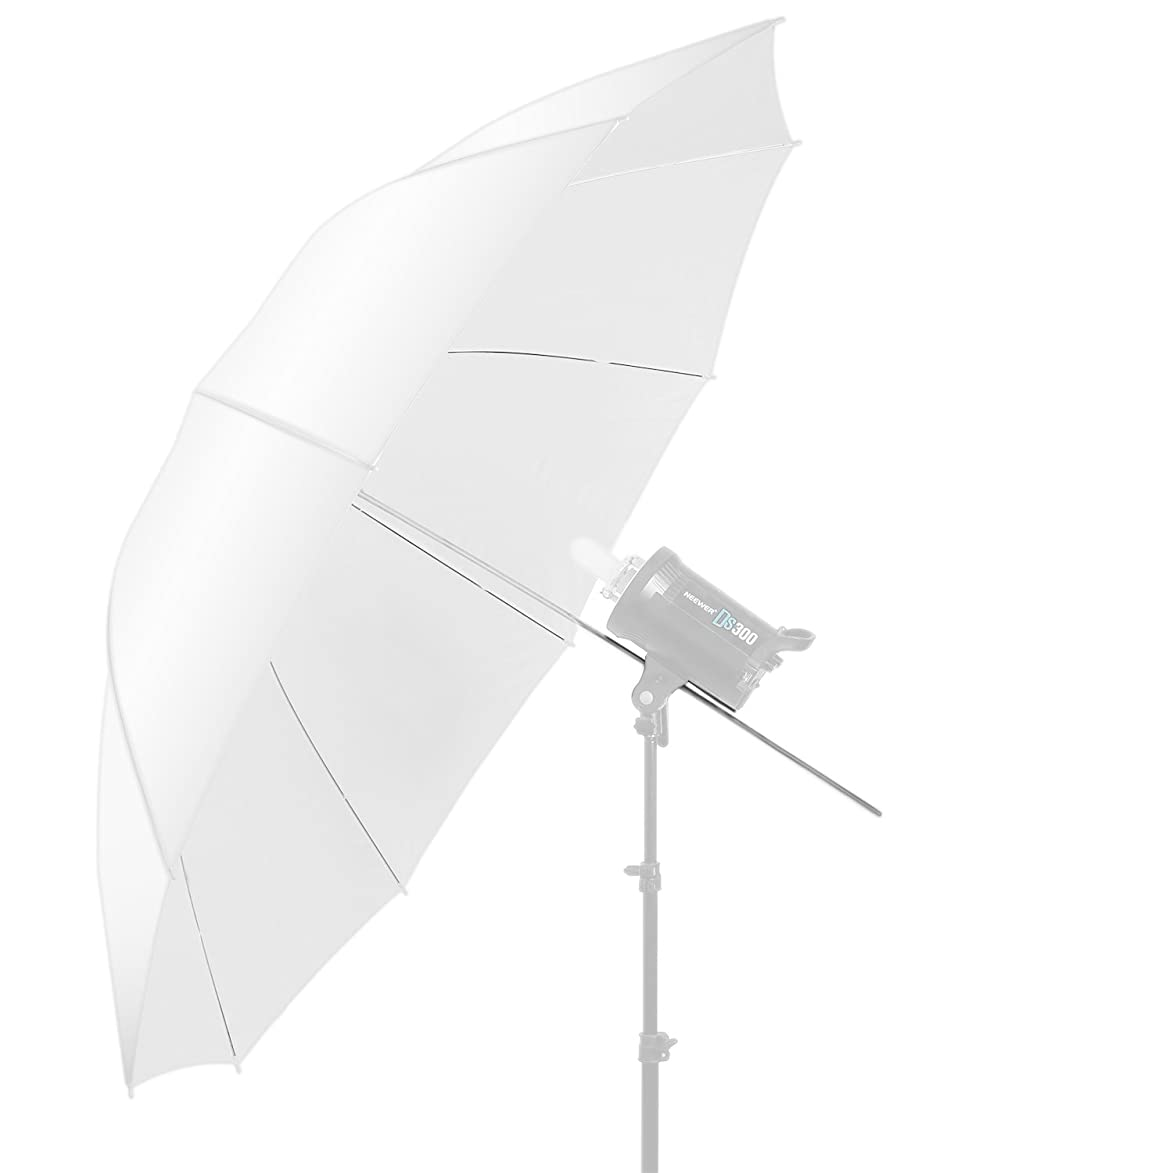 Neewer 60 inch/152cm Photography Translucent Soft White Diffuser Umbrella for Photo and Video Studio